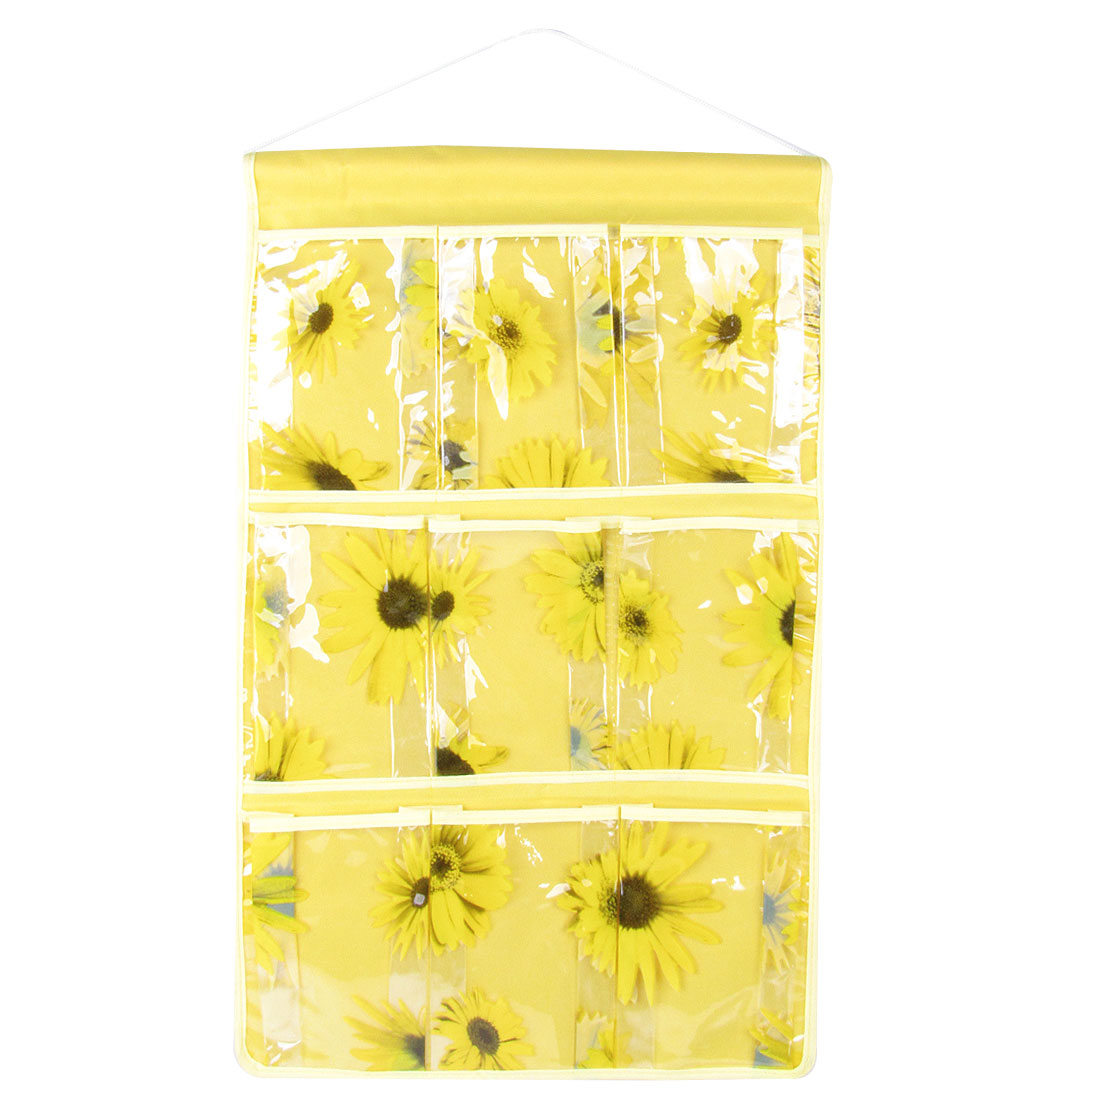 PVC 9 Compartments Home Organizer Hanging Pocket Bag Yellow